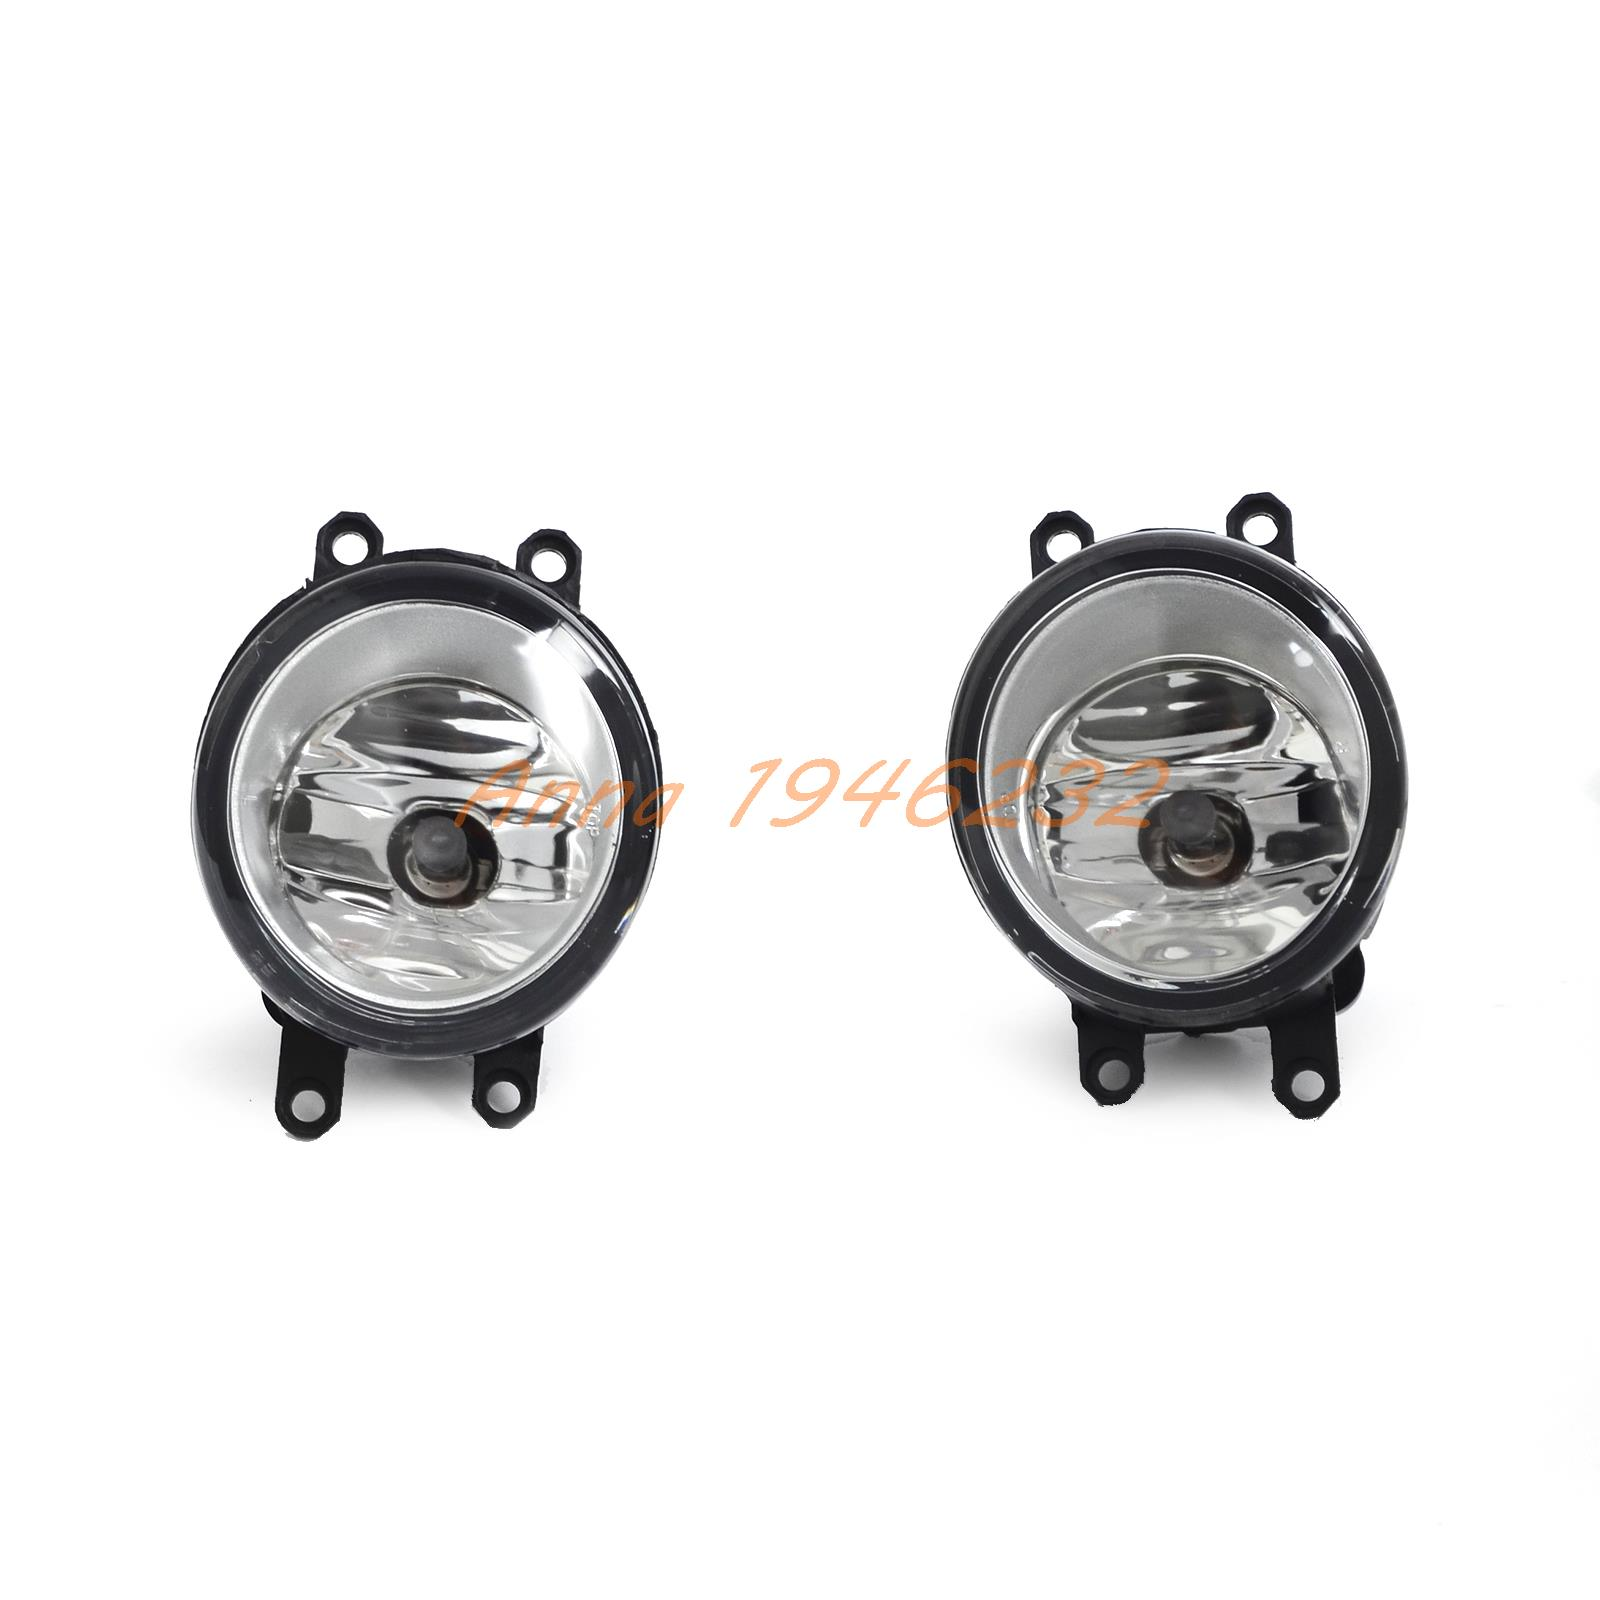 NICECNC Fog Light Lamps with H11 Bulbs For Toyota Avalon Corolla Camry Highlander Hybrid Matrix Prius Sienna Yaris Solara RAV4 платье finn flare finn flare mp002xw15kx5